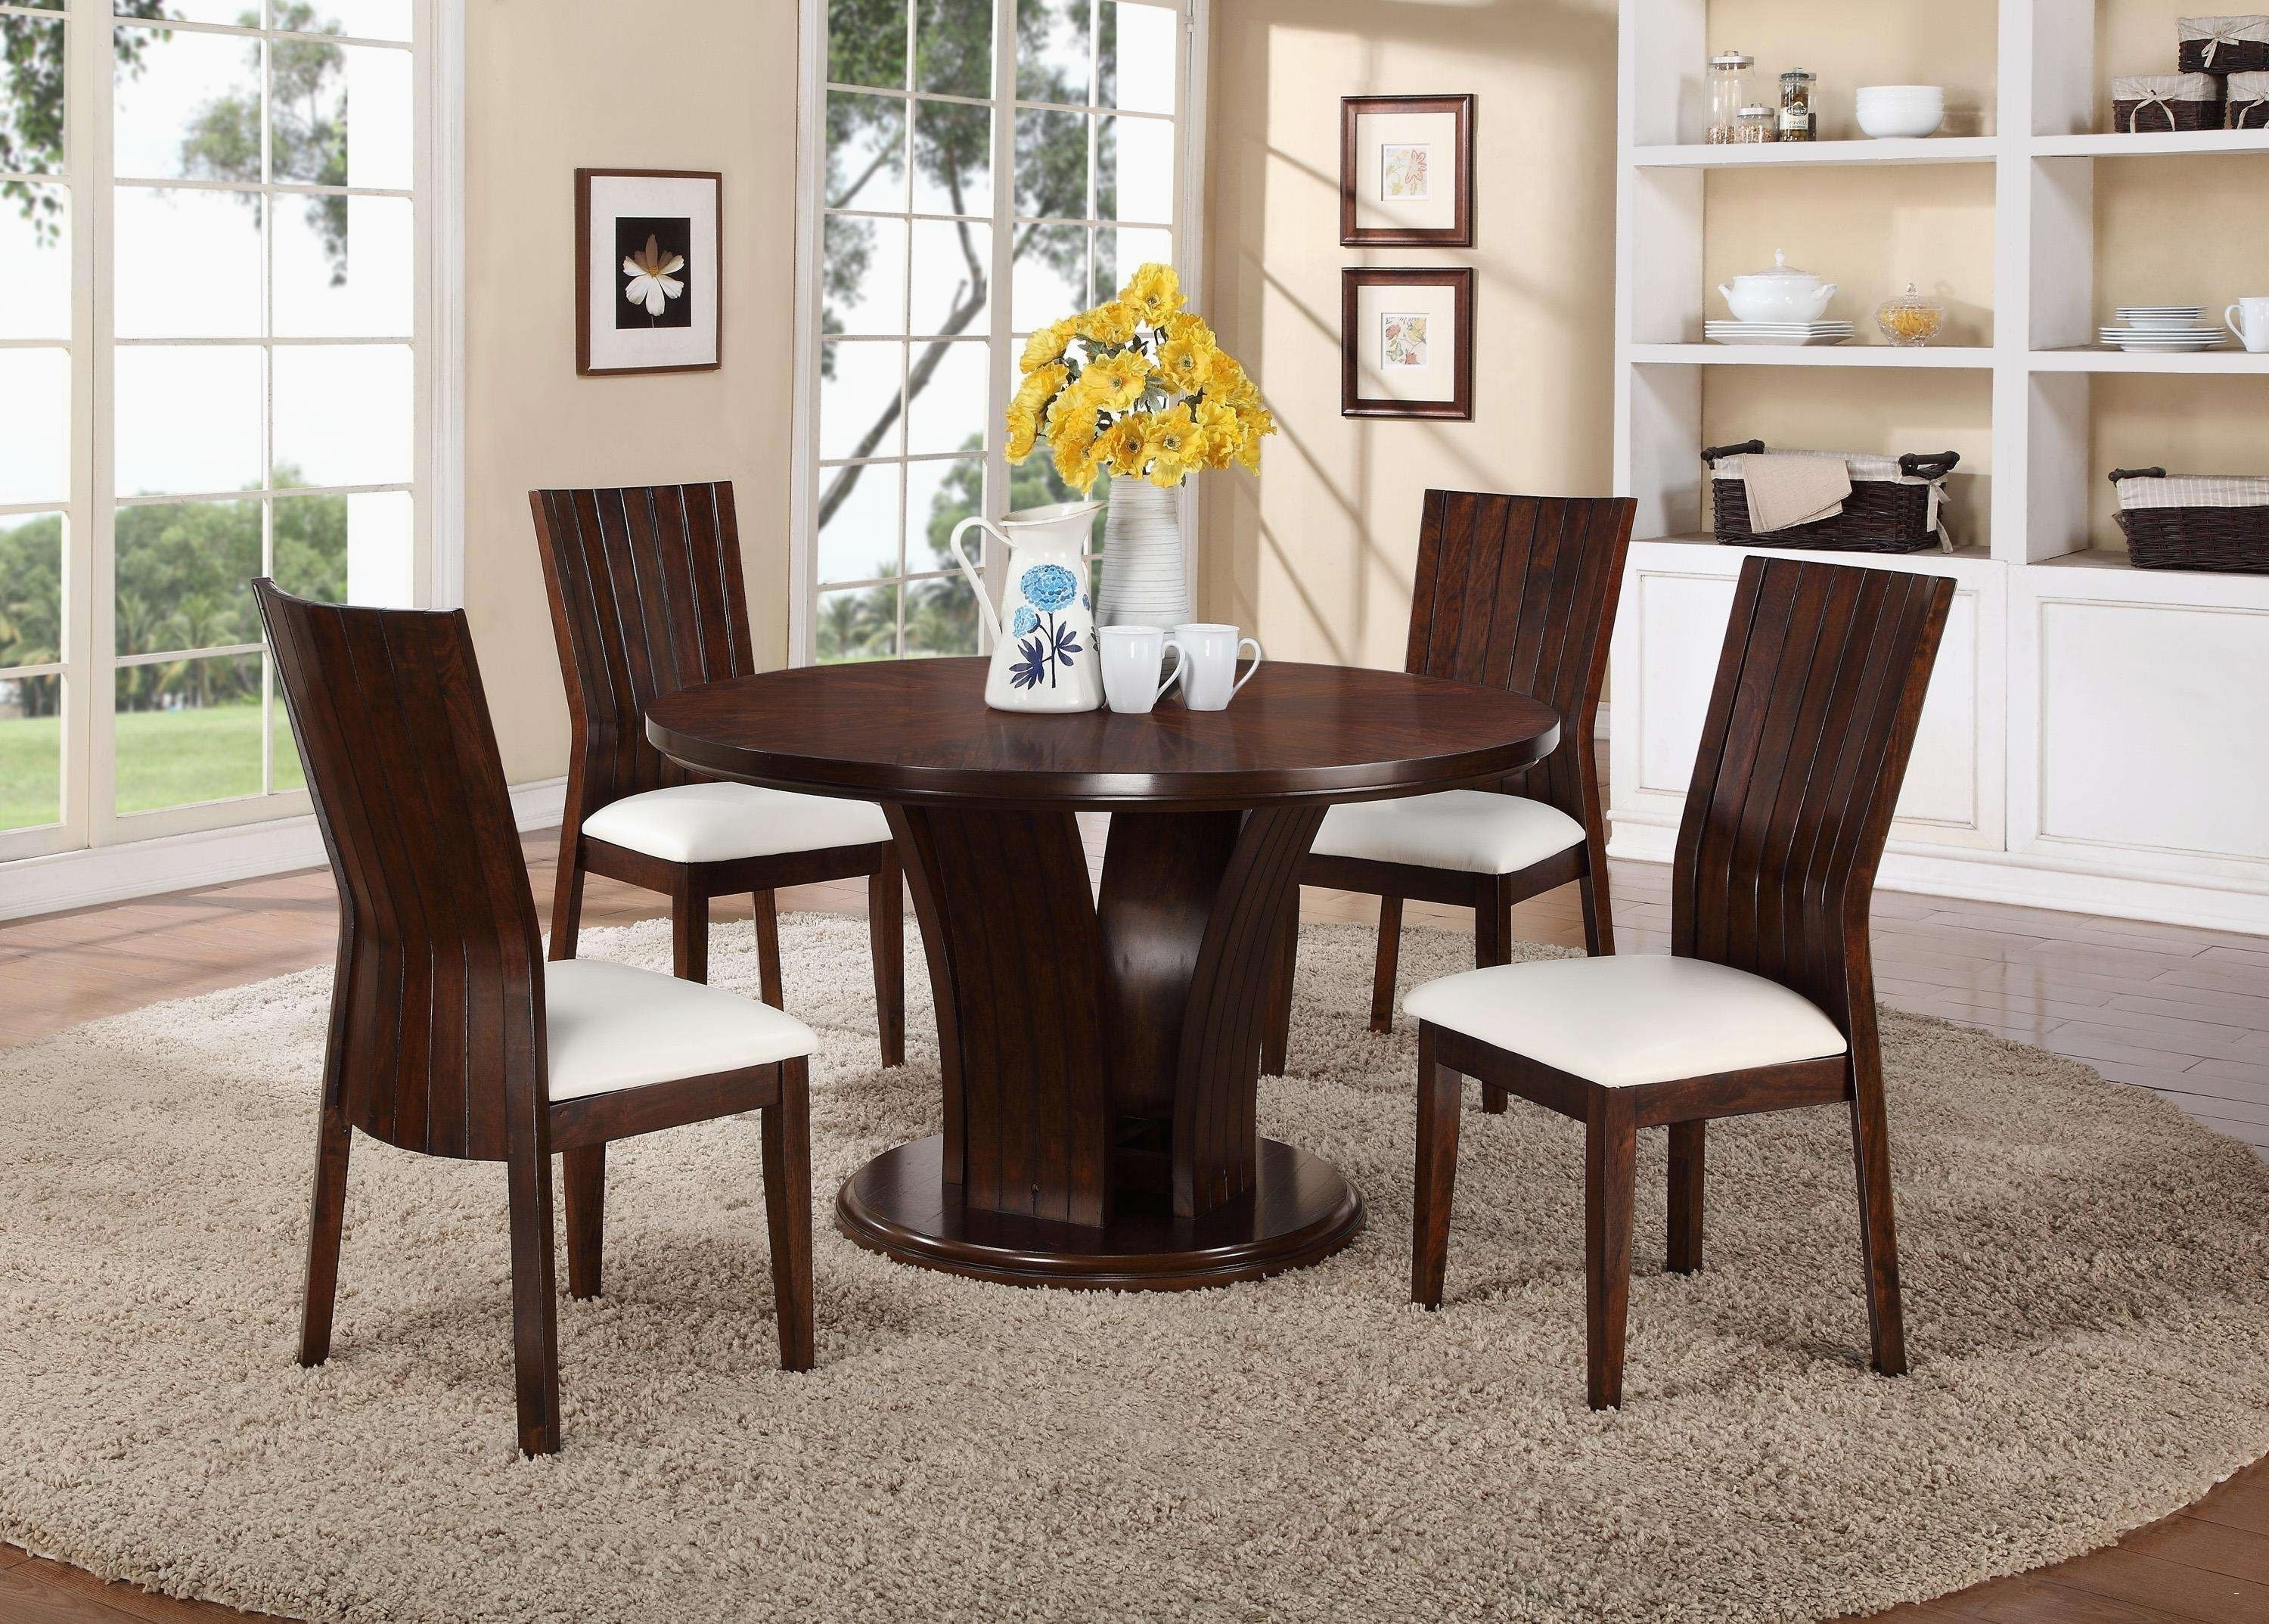 6 Seater Round Dining Tables Intended For Current Round Dining Tables For 8 Inspirational 6 Seat Round Dining Table (Gallery 17 of 25)